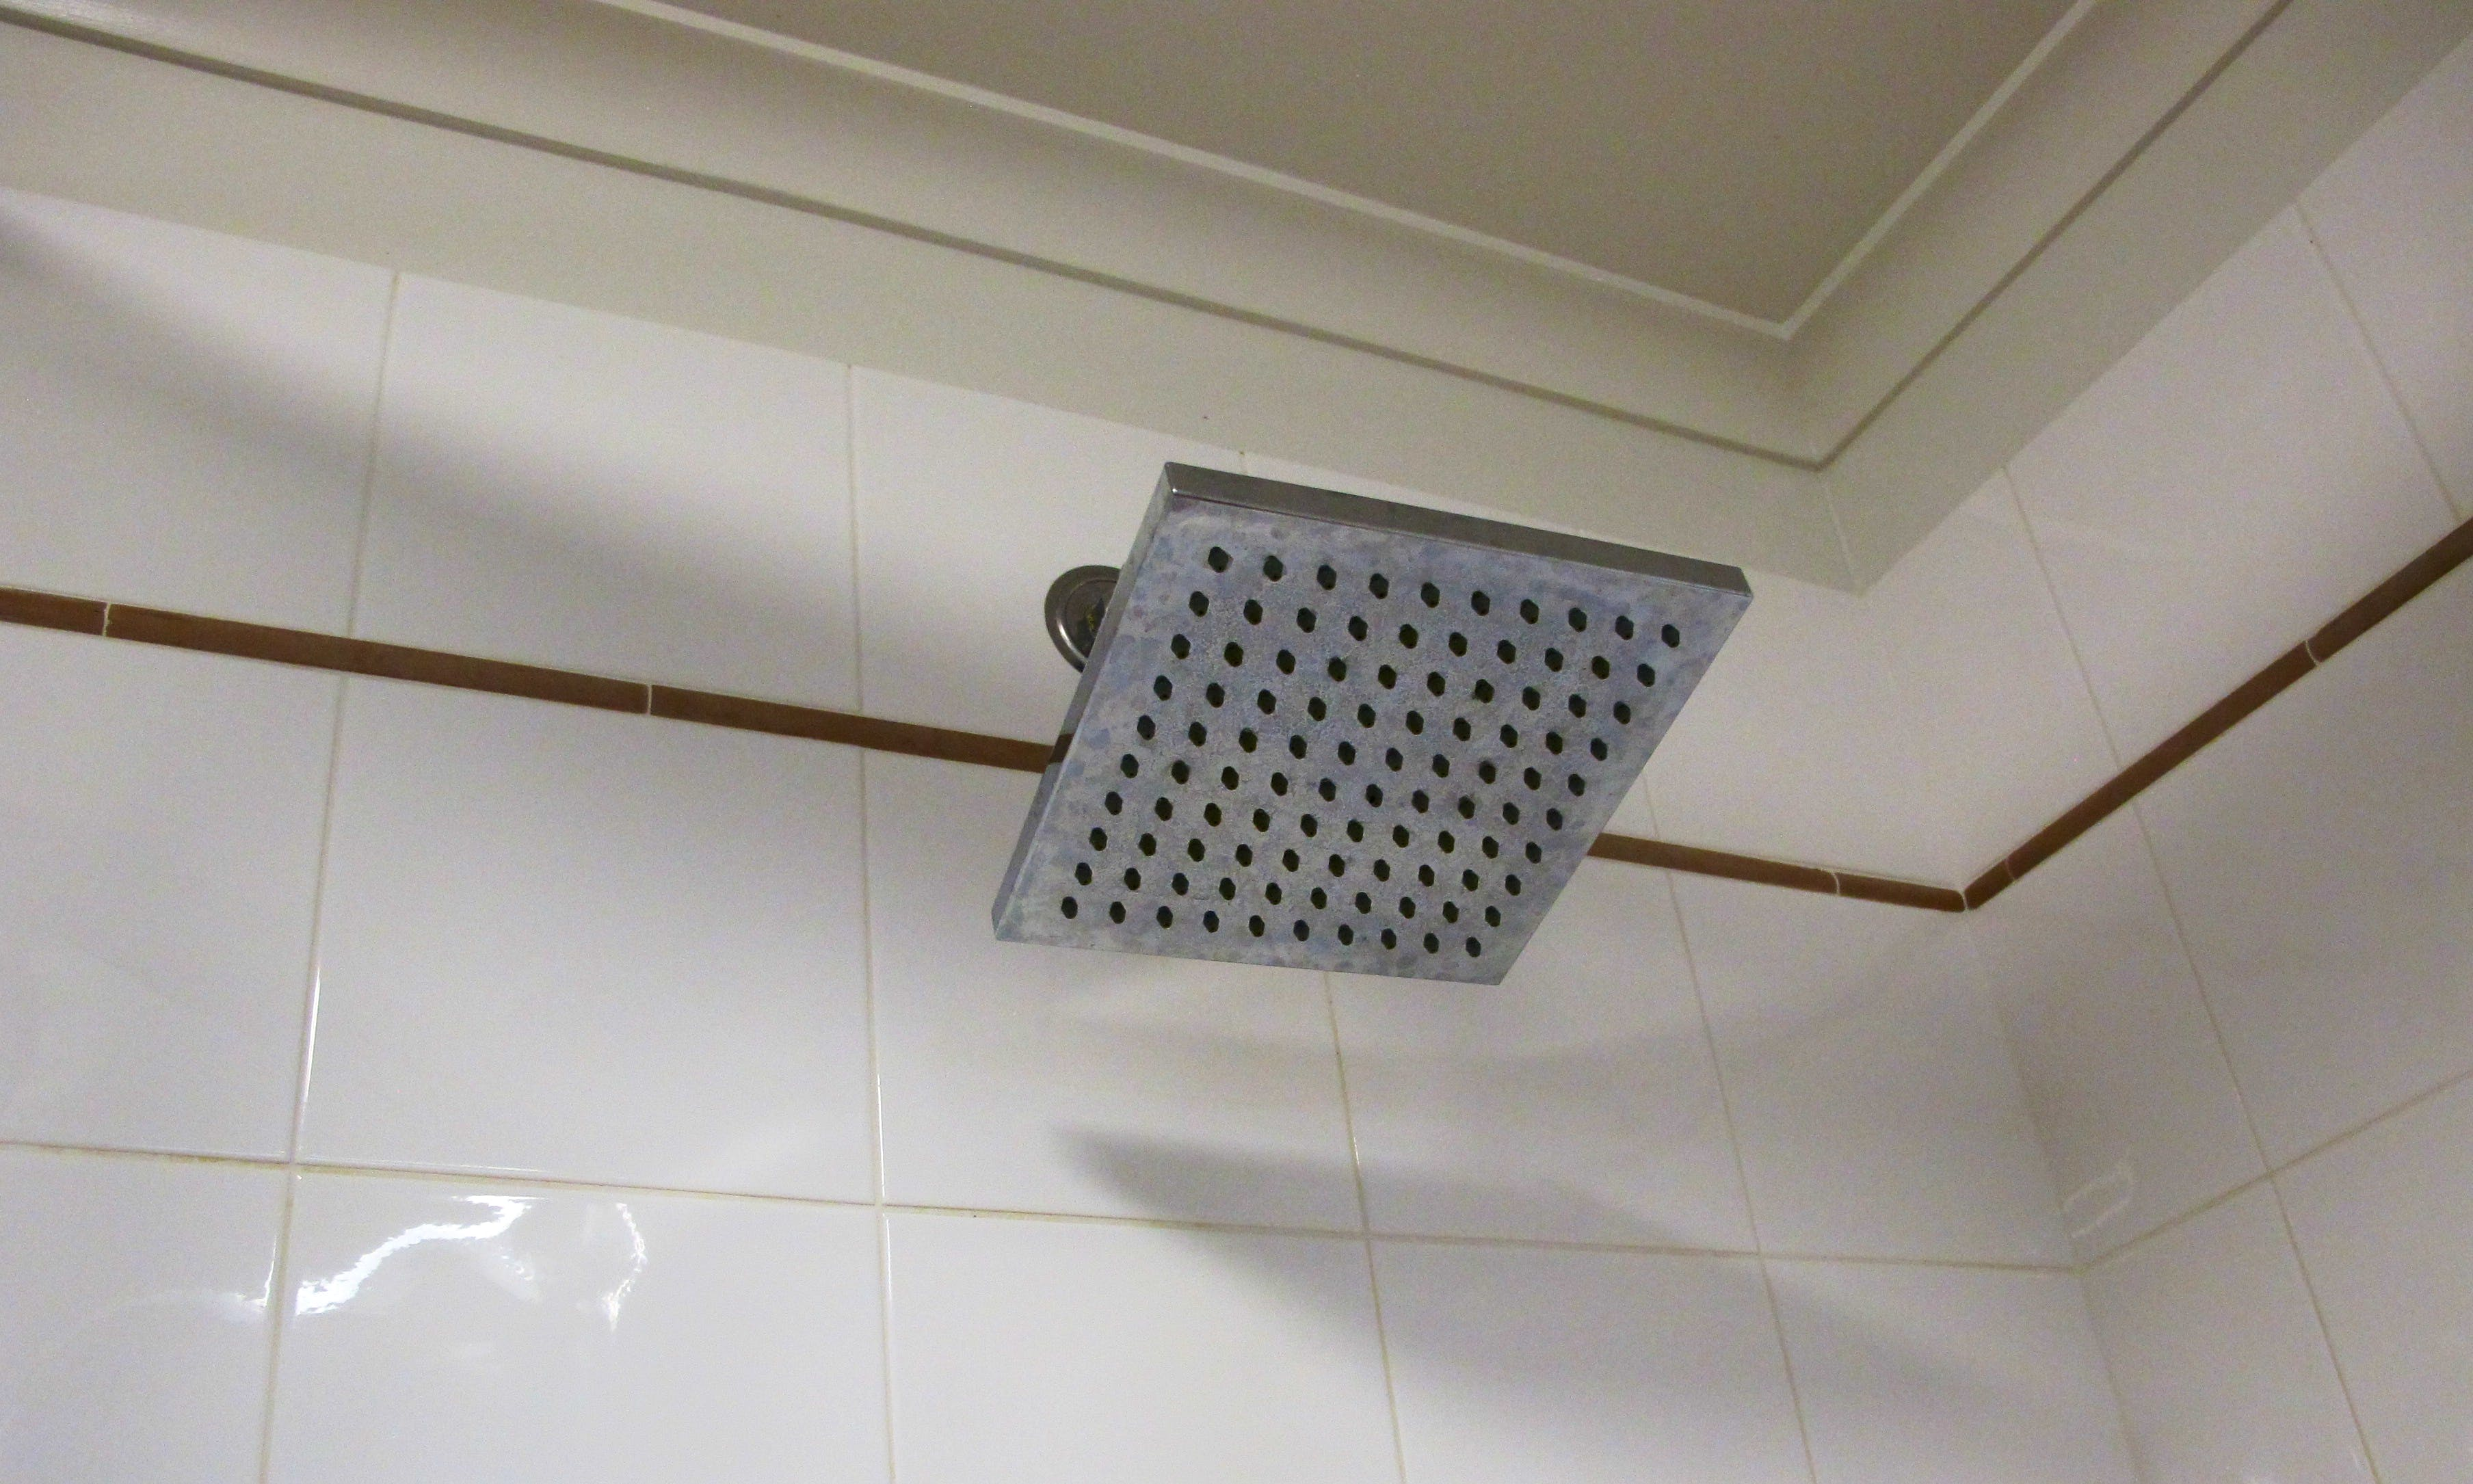 Rain-shower head with unlimited hot water